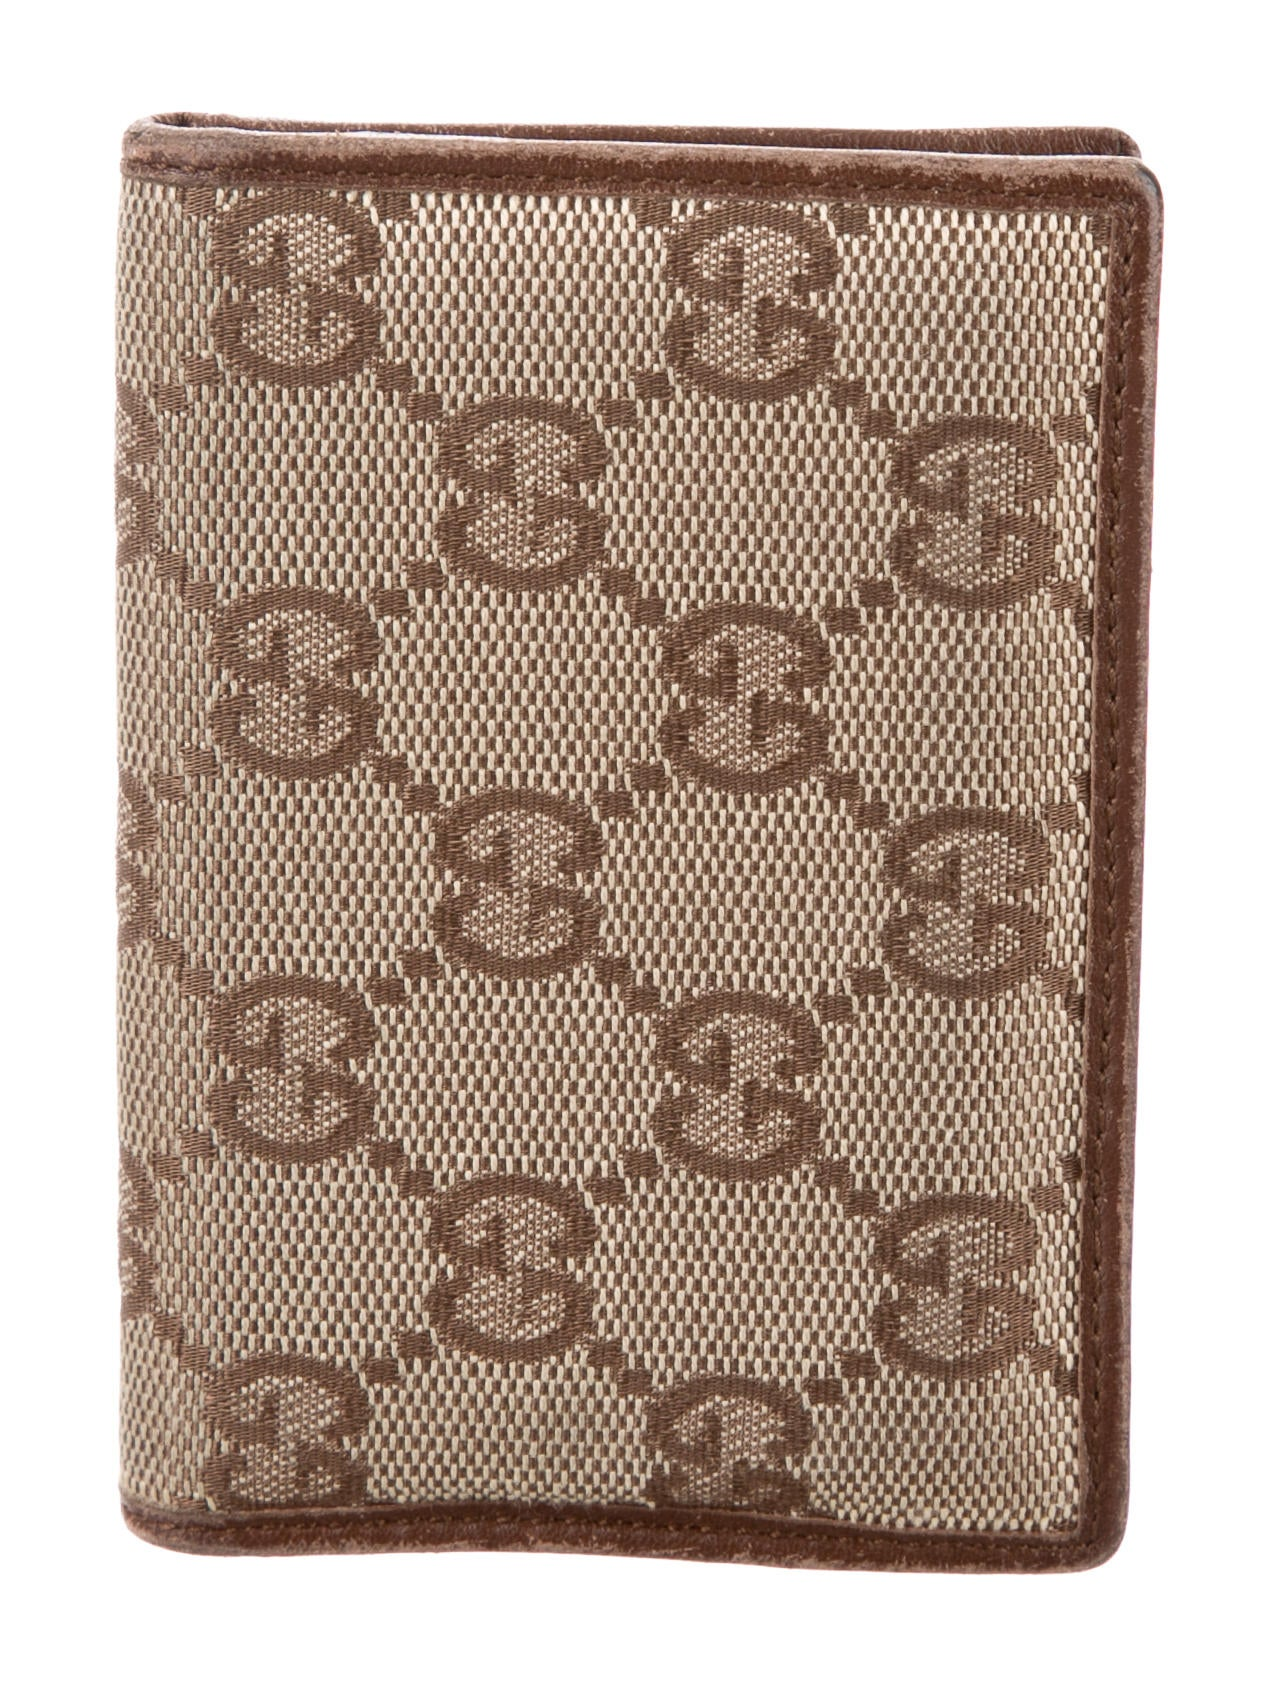 Gucci GG Id & Card Holder - Accessories - GUC206238 | The RealReal